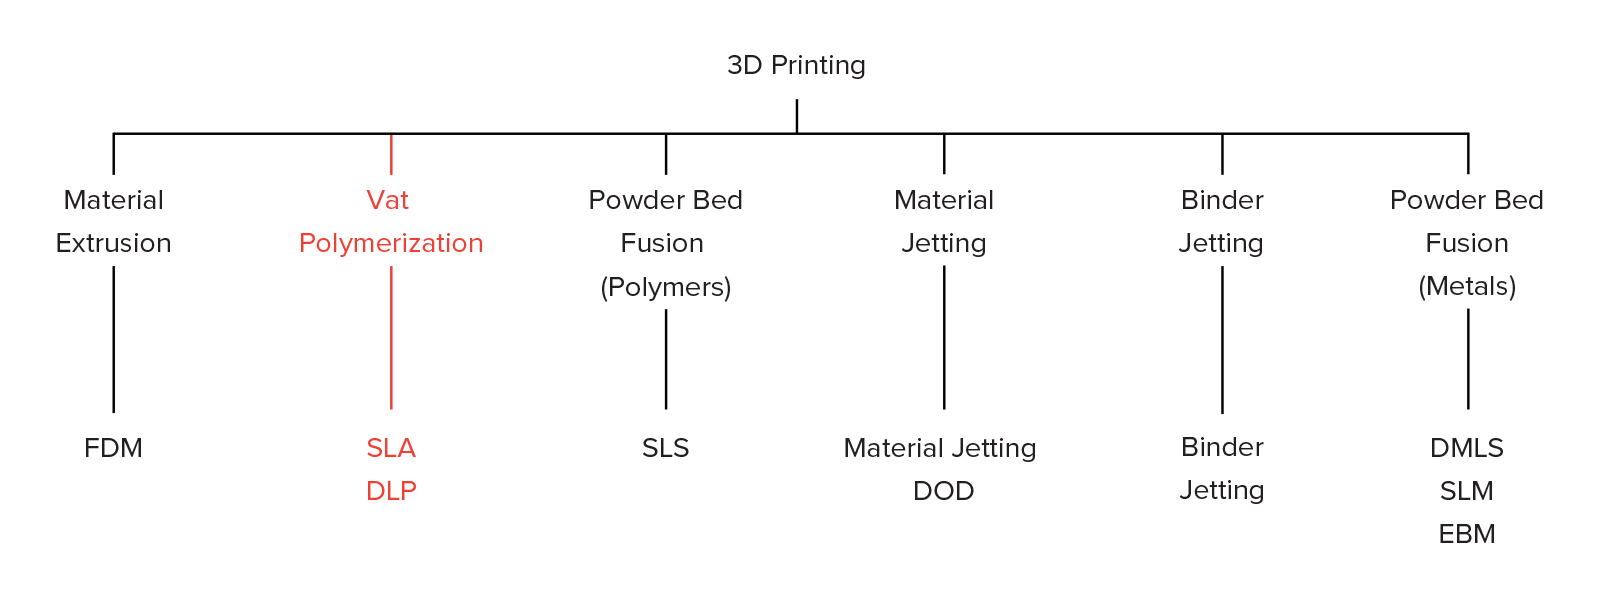 Introduction to SLA 3D Printing | 3D Hubs